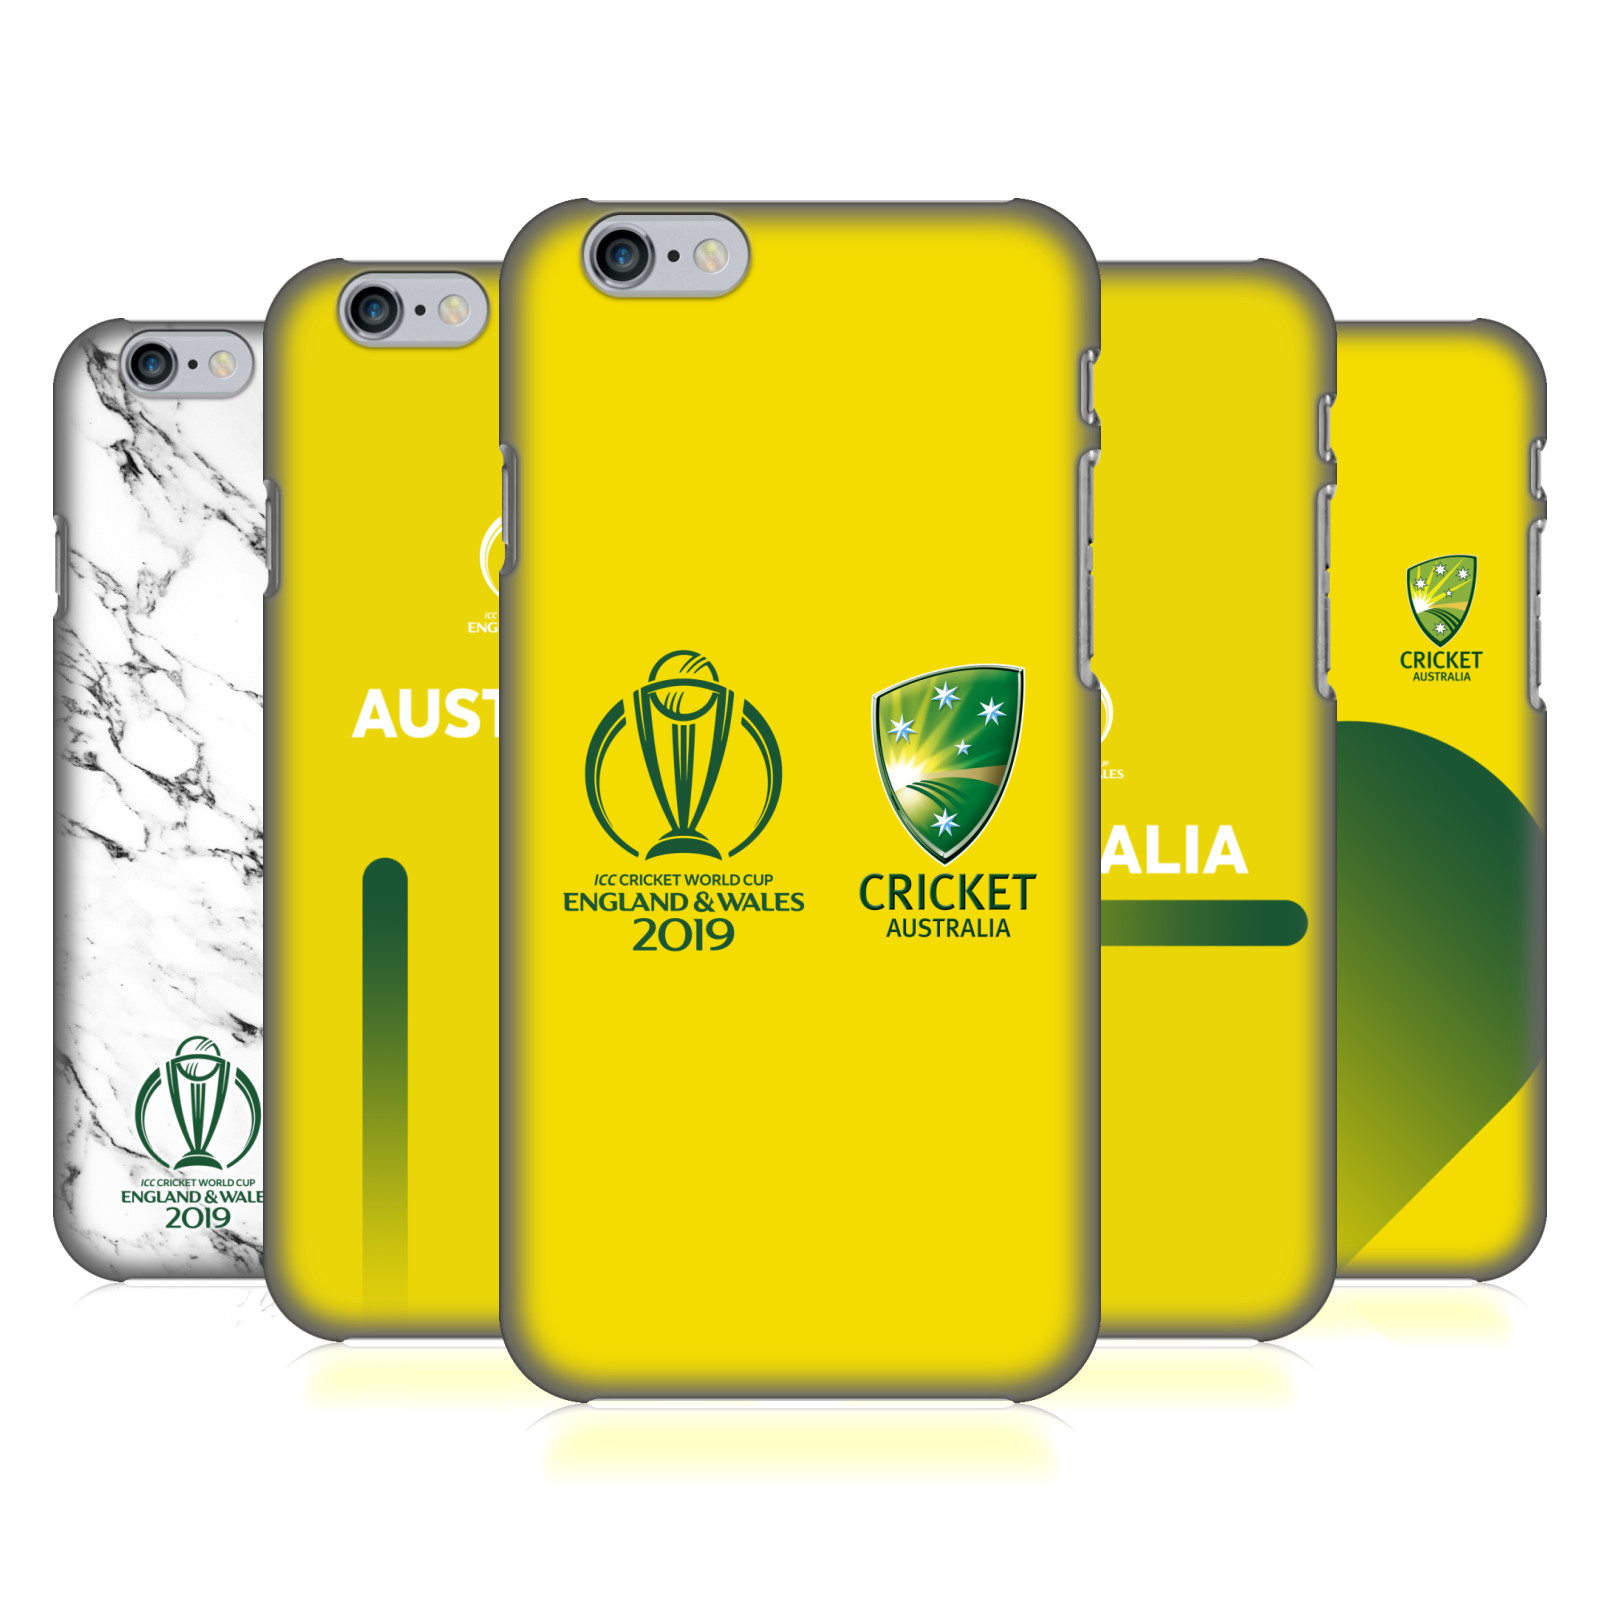 ICC Australia Phone and Tablet cases